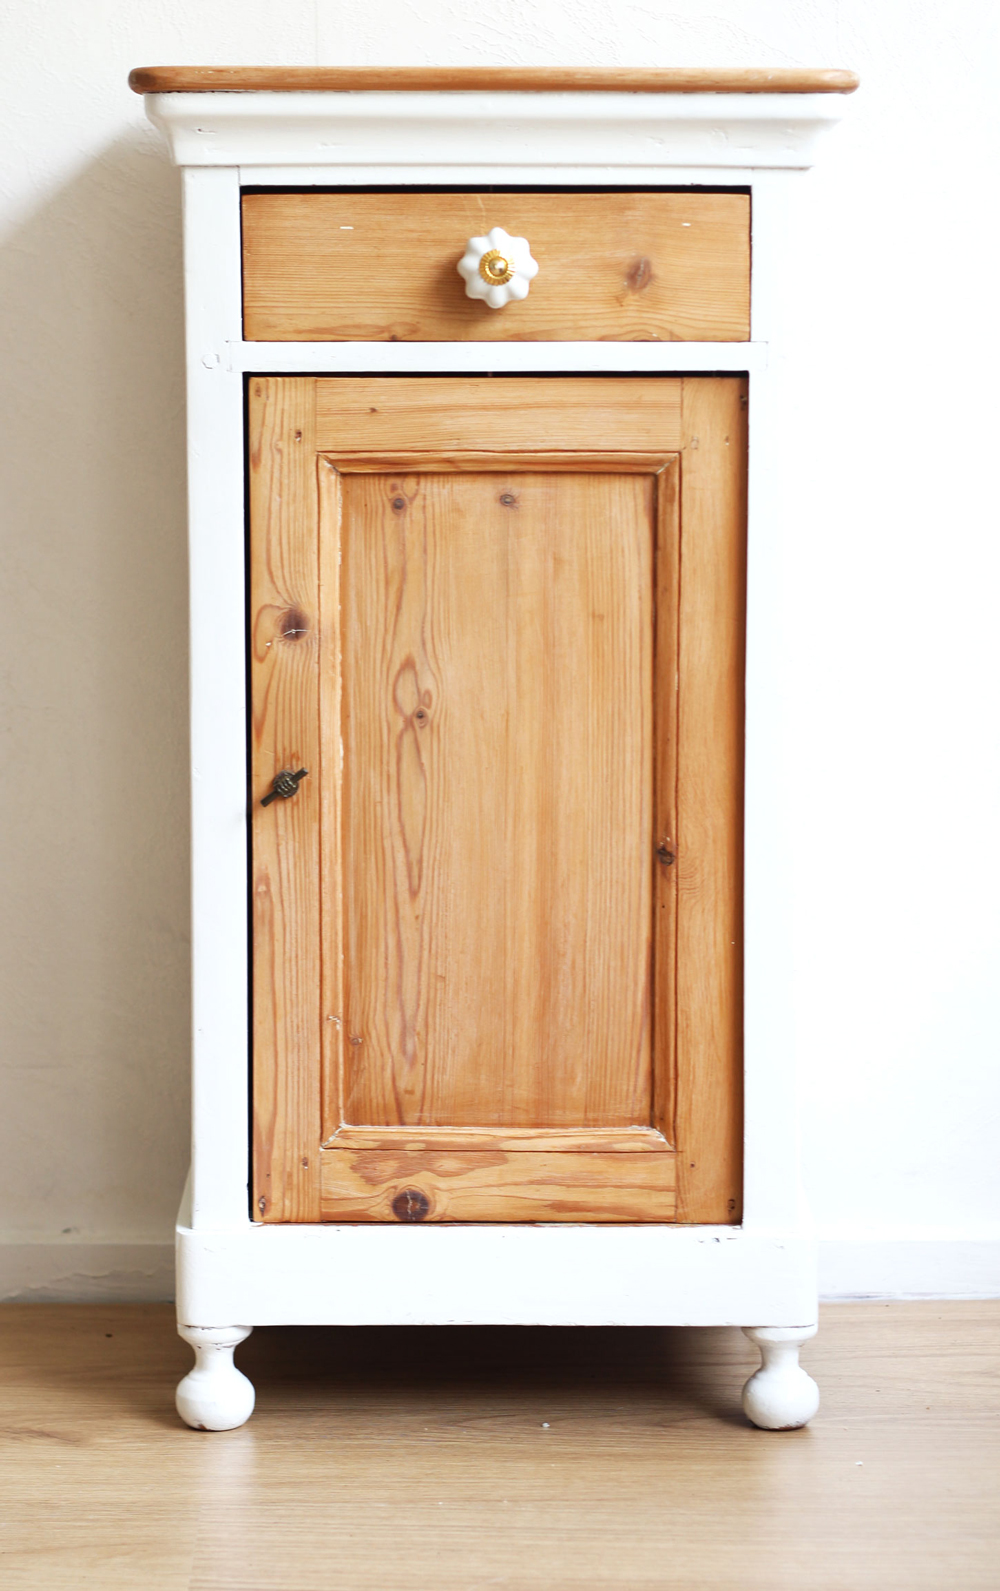 DIY | Upcycled Vintage Cupboard